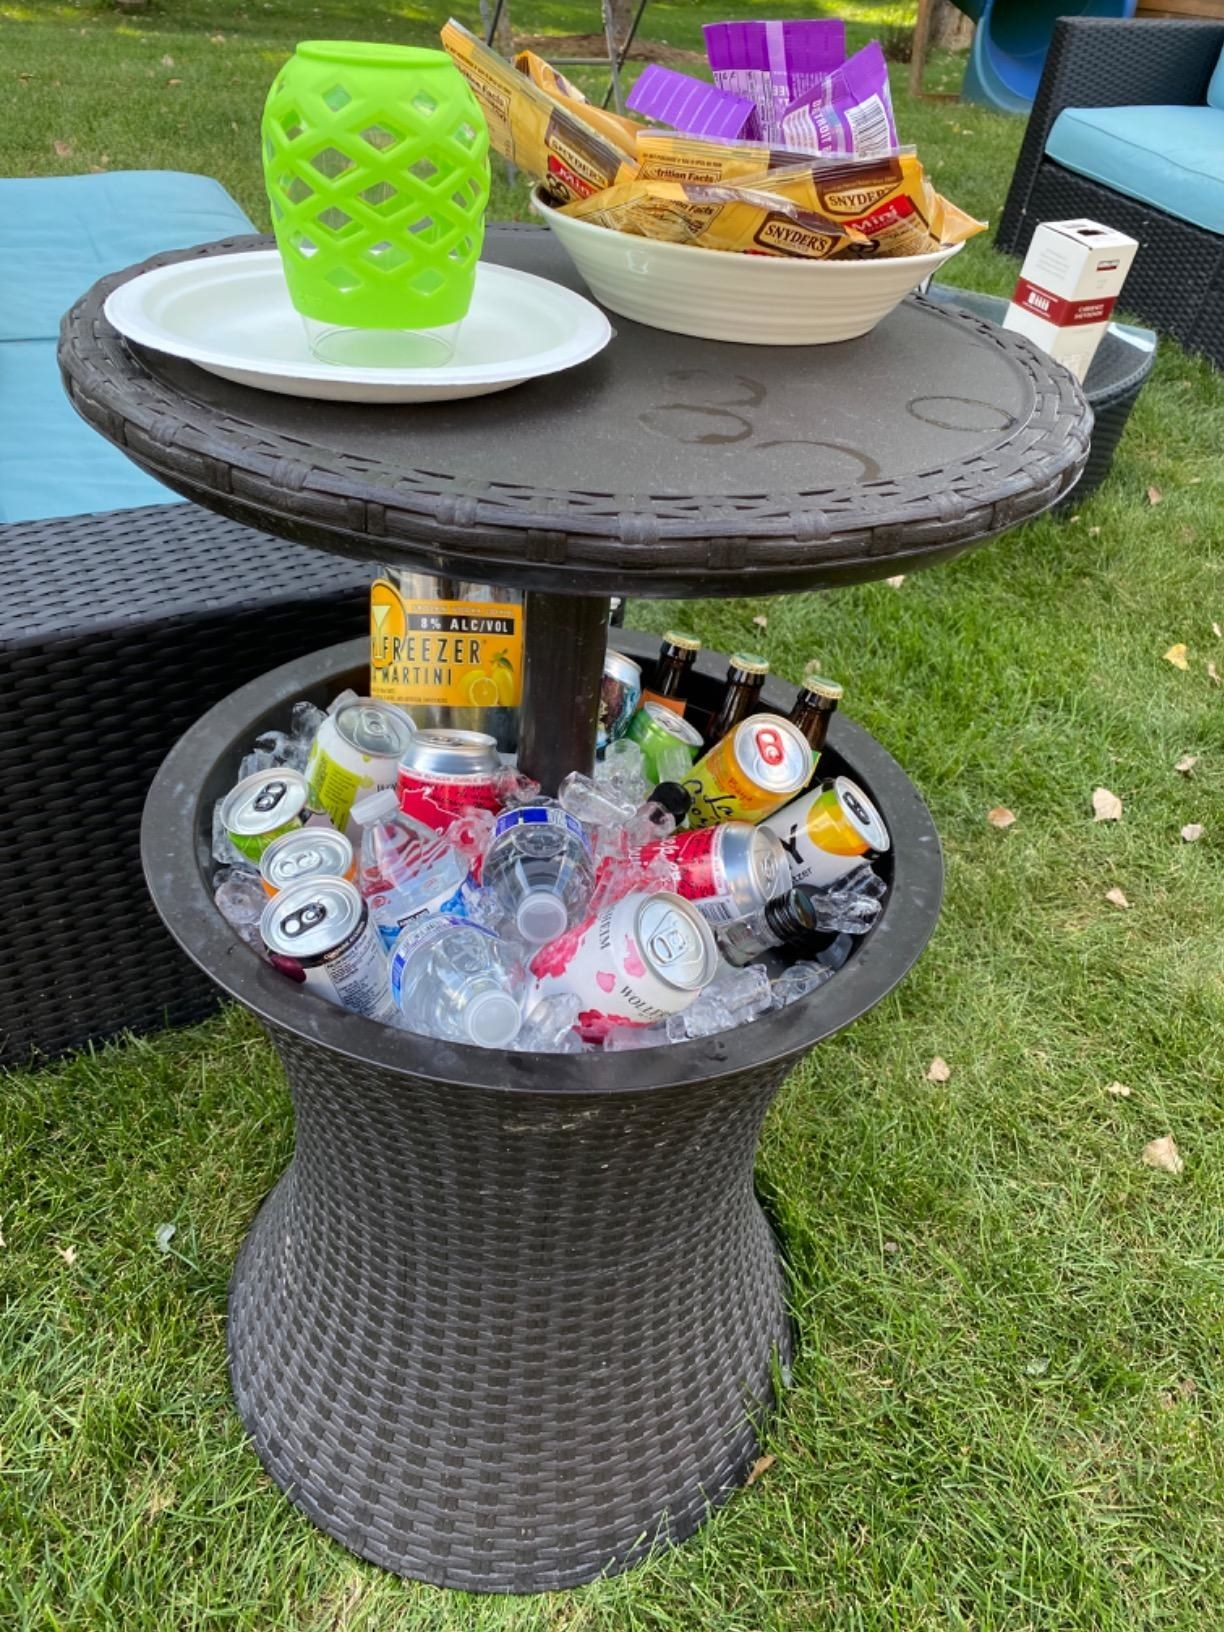 The hgih top table extending out of the cooler base, with food on the table and drinks and ice in the cooler base